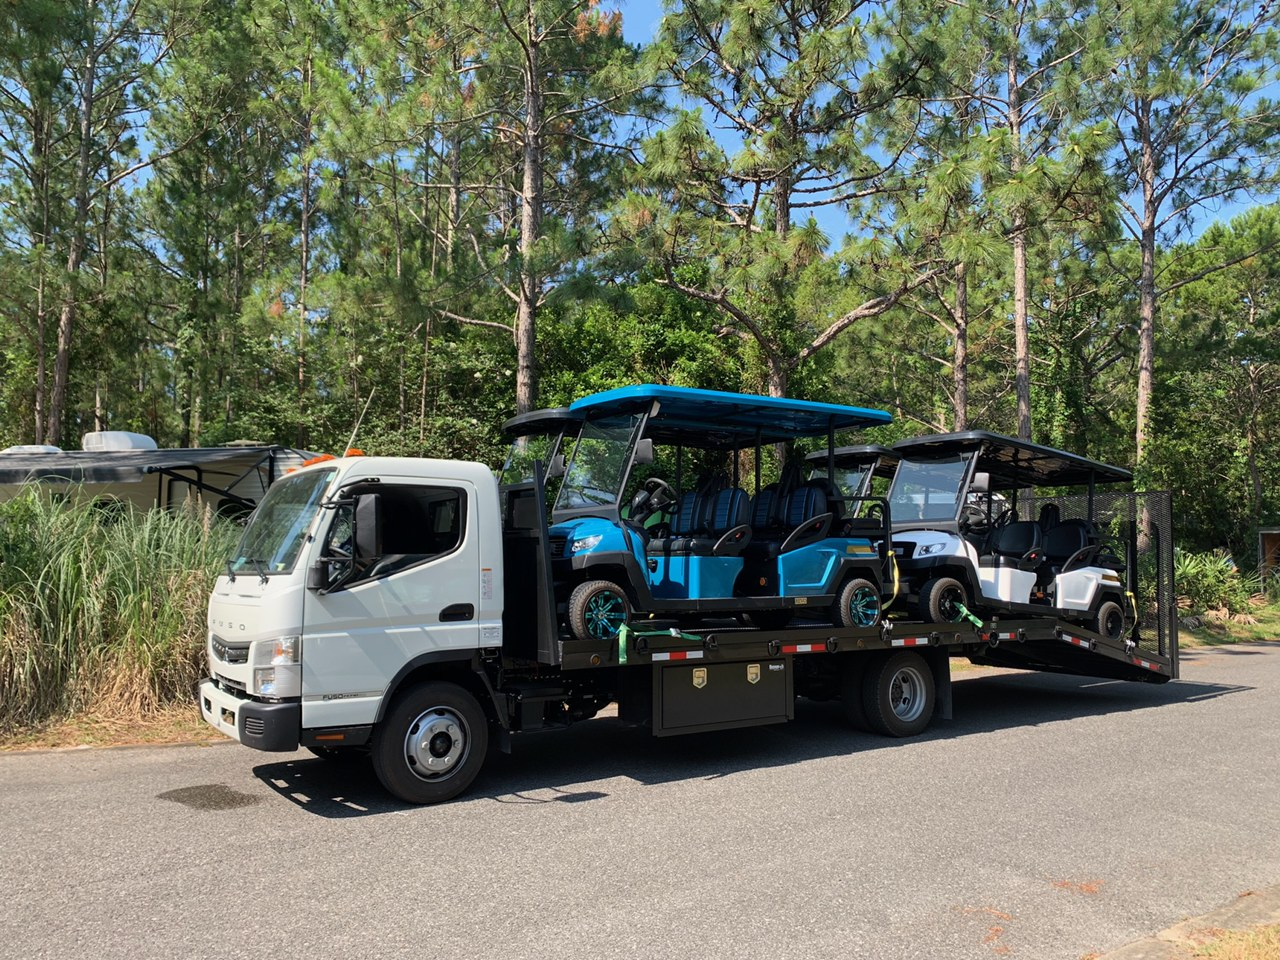 Four golf carts for rent in Destin Florida